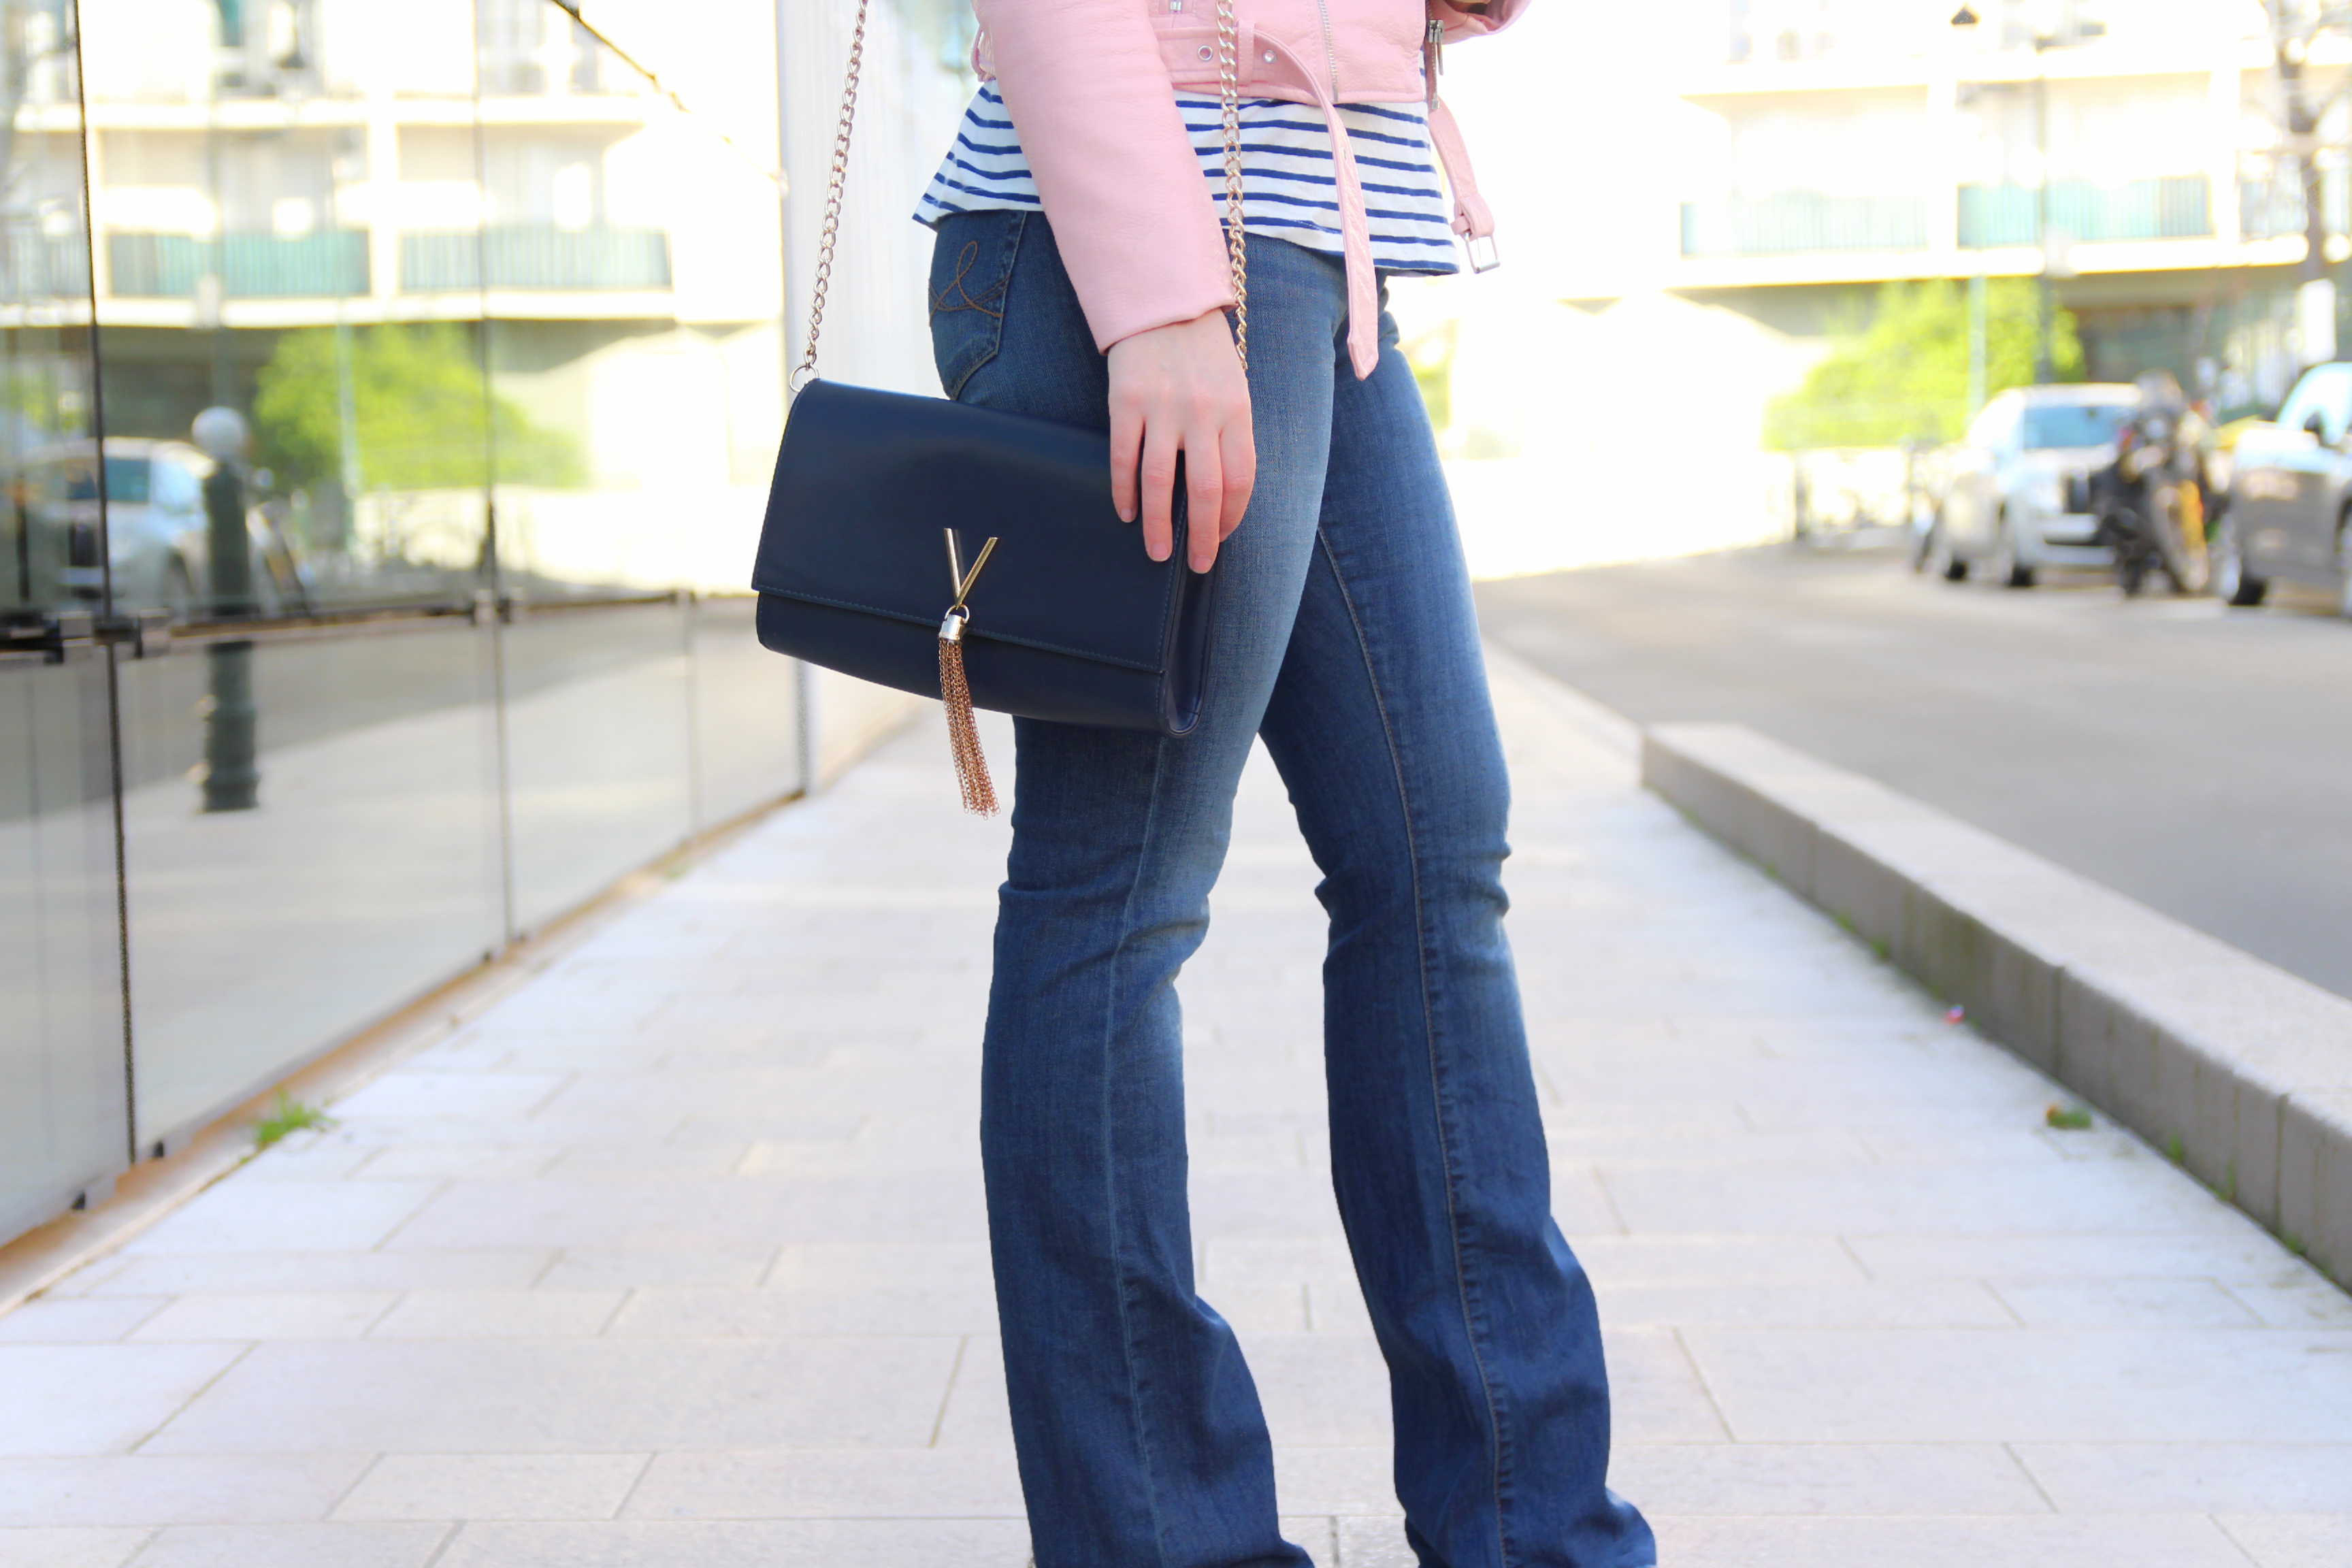 perfecto-rose-zara-marinniere-denim-influencer-fashion-ottd-look-seralynepointcom-paris-IMG_6955